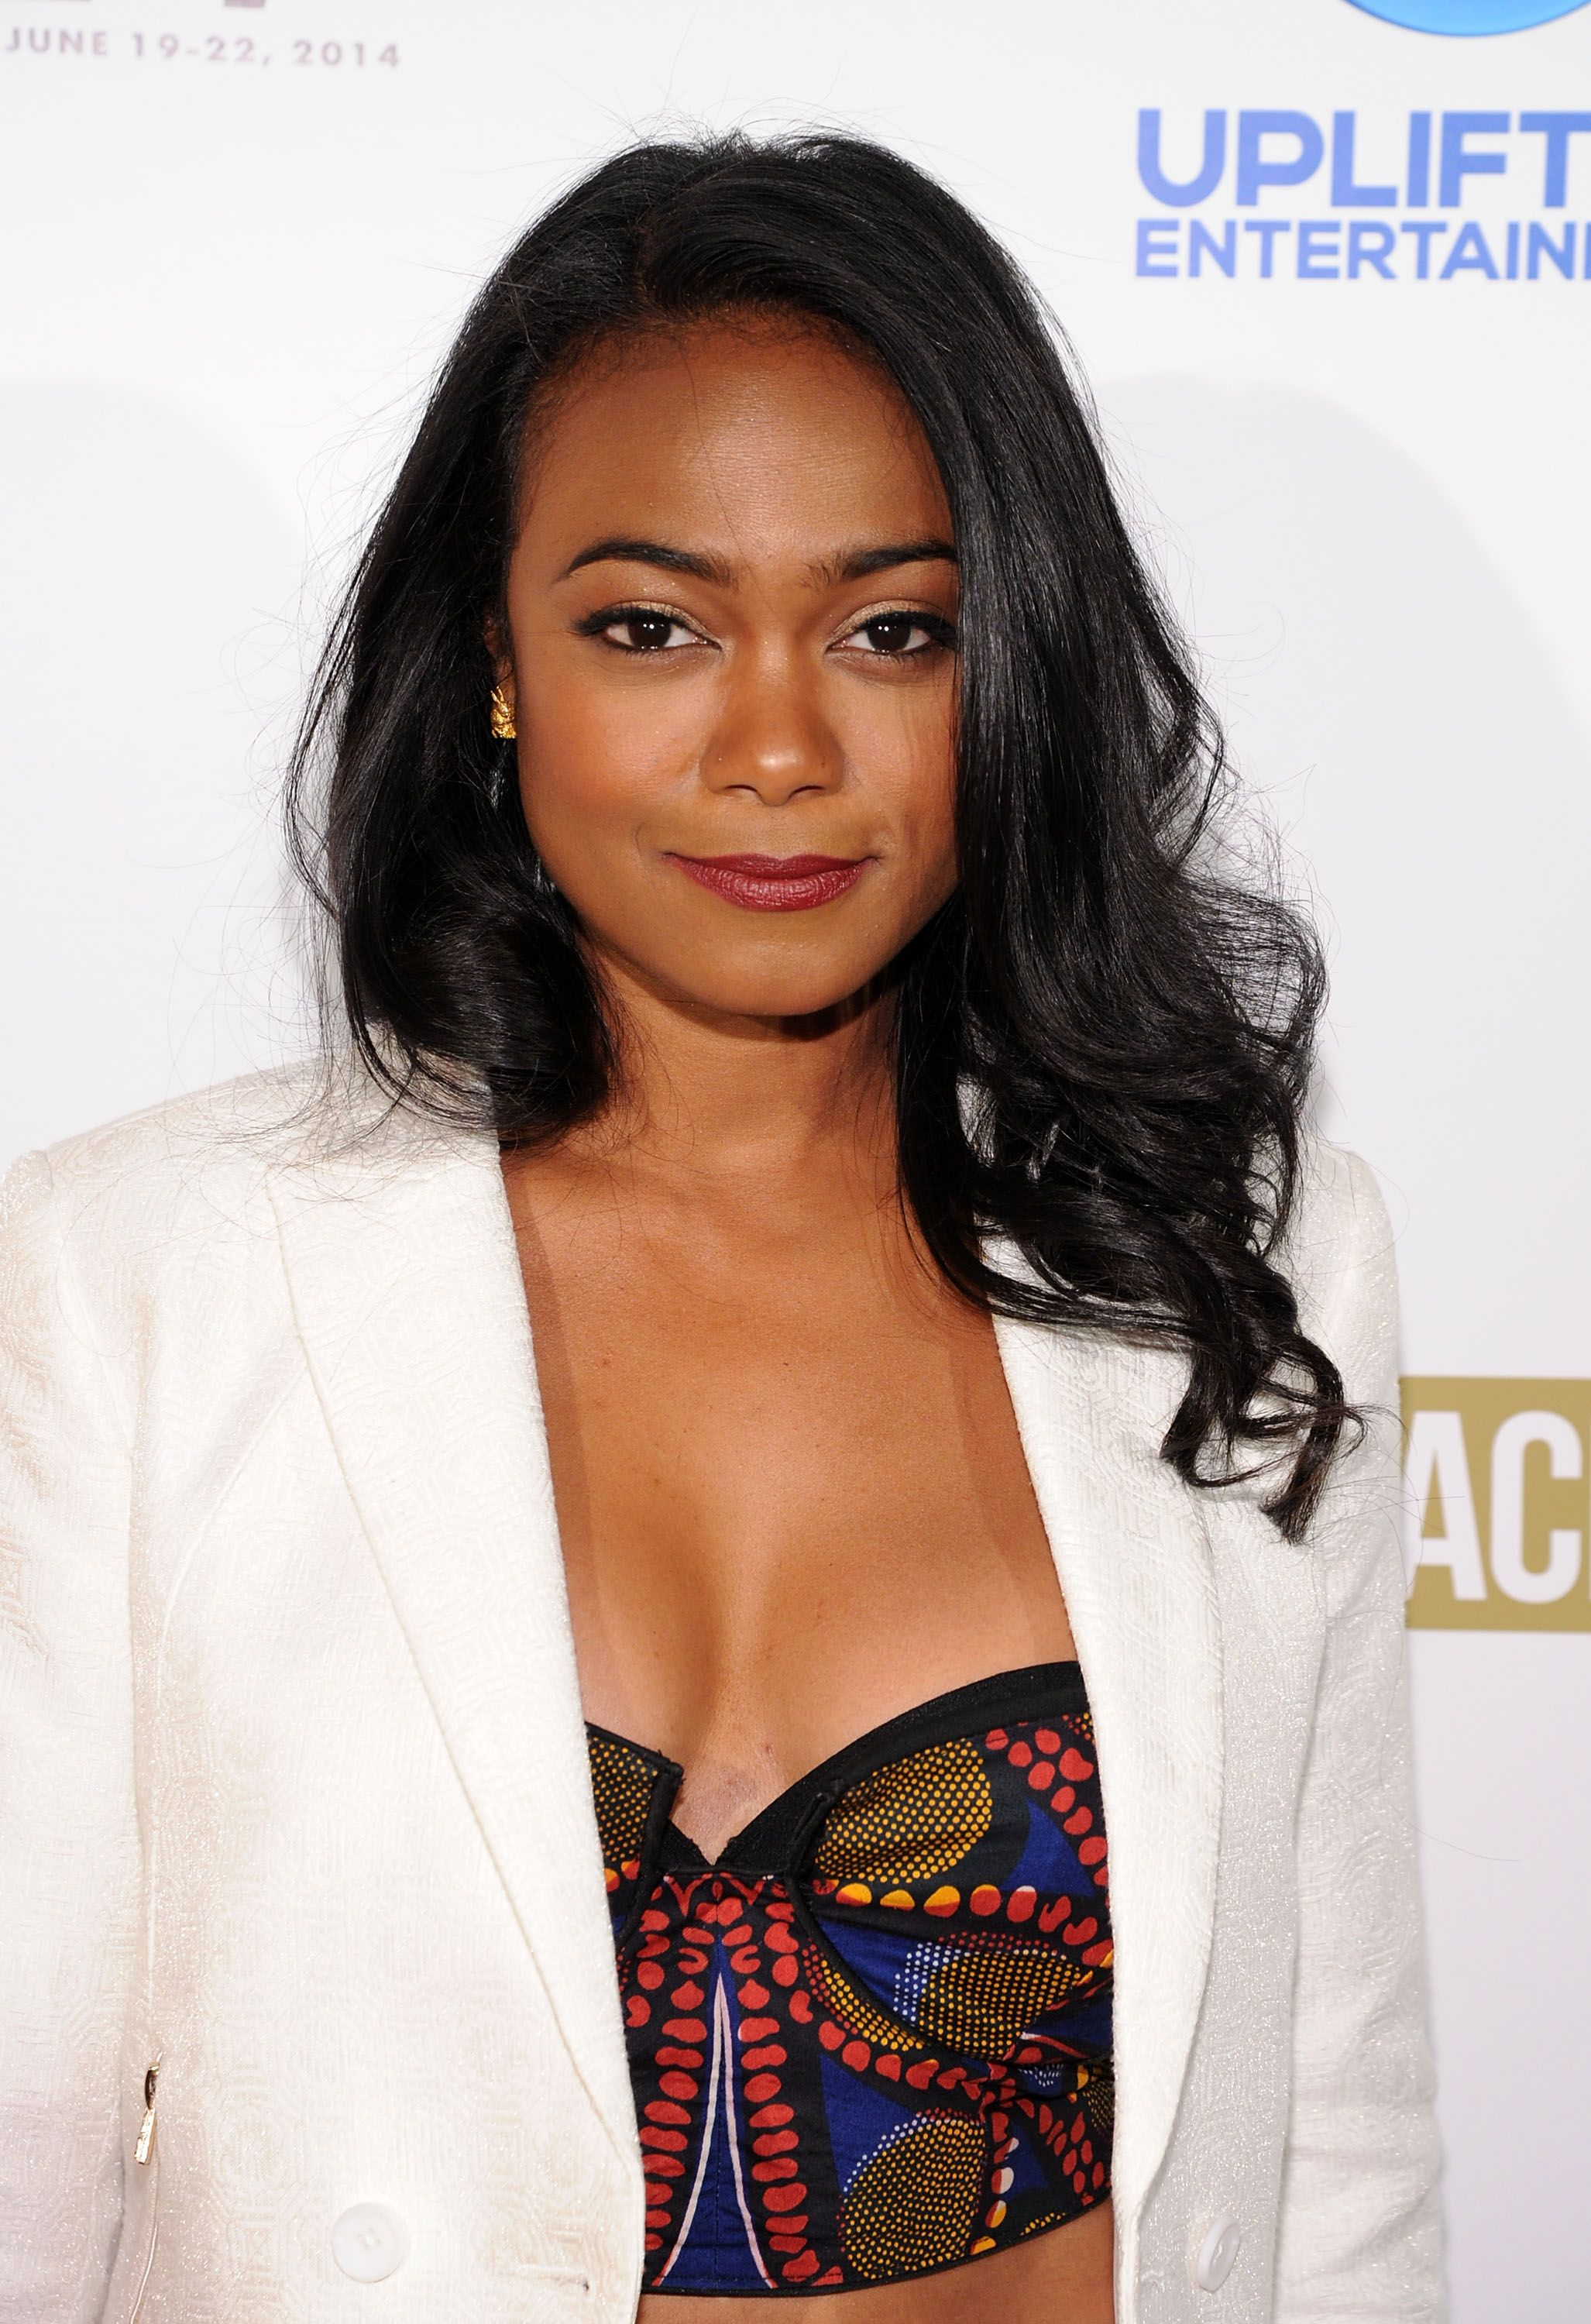 """Tatyana Ali at UP TV Premiere of """"Comeback Dad"""" on June 21, 2014 in New York. 